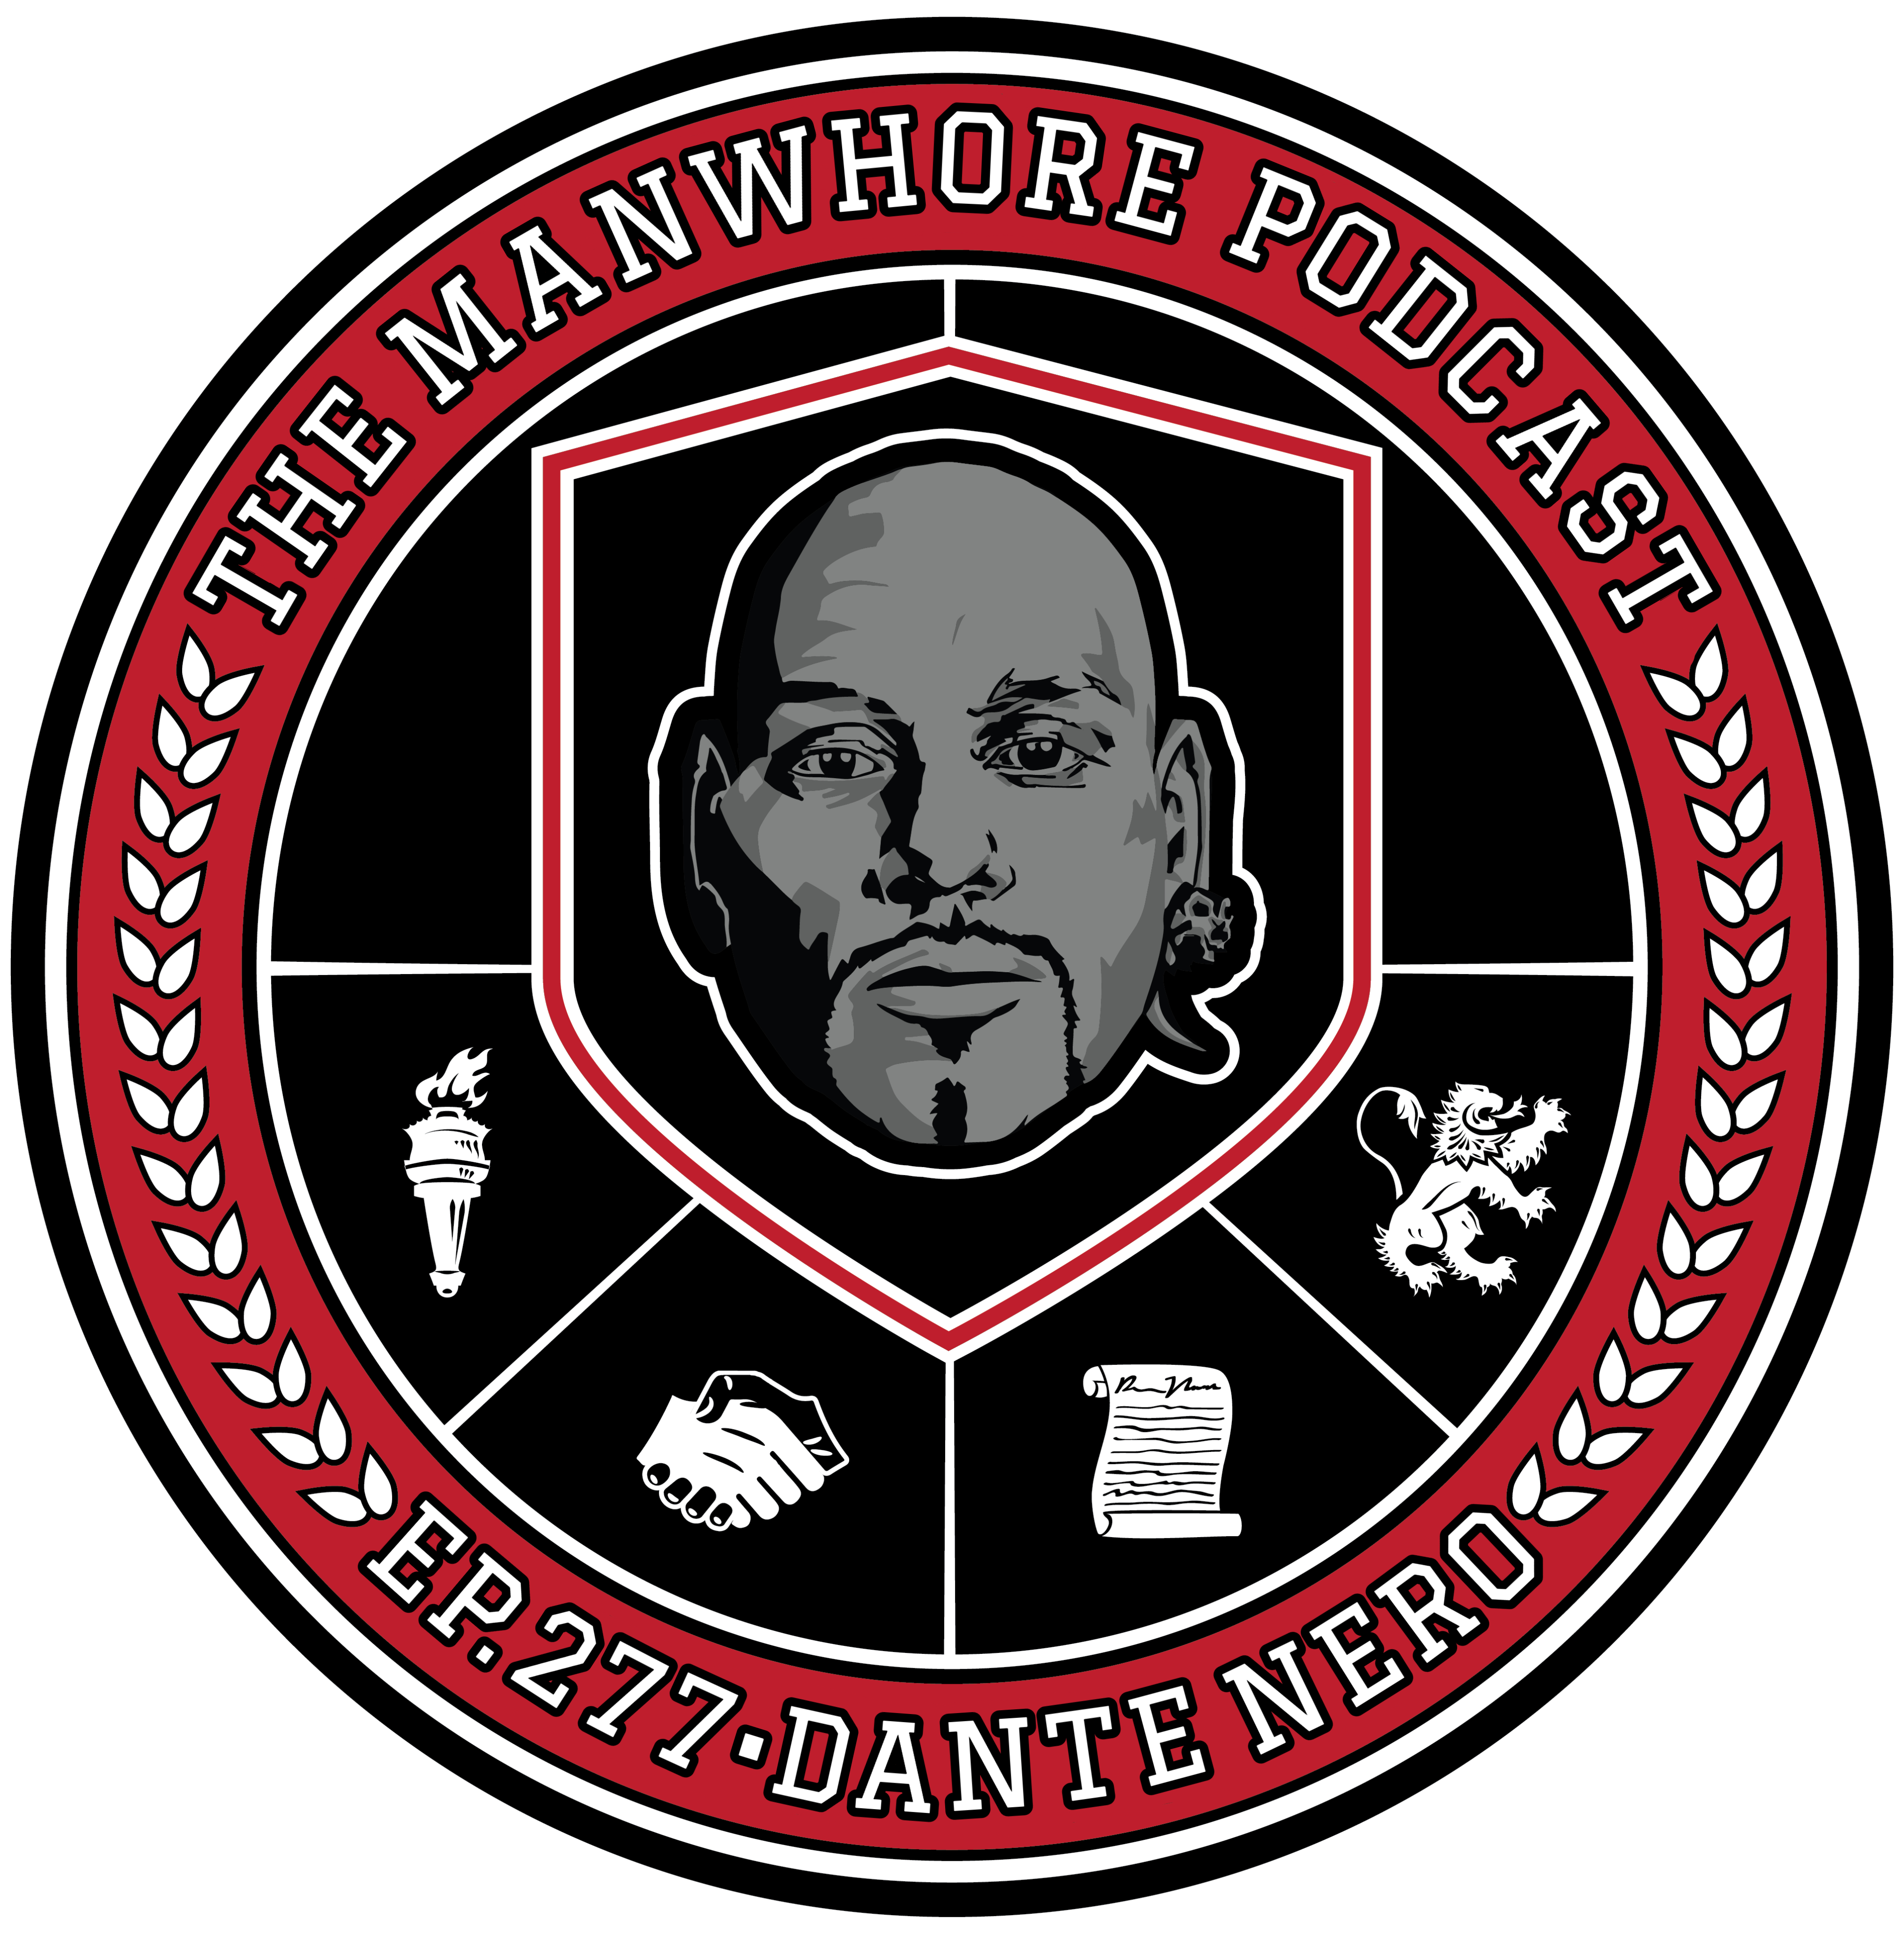 The Manwhore Podcast: A Sex-Positive Quest - Ep. 277: Can a pimp be redeemed? Dante Nero on Empathy and Masculinity